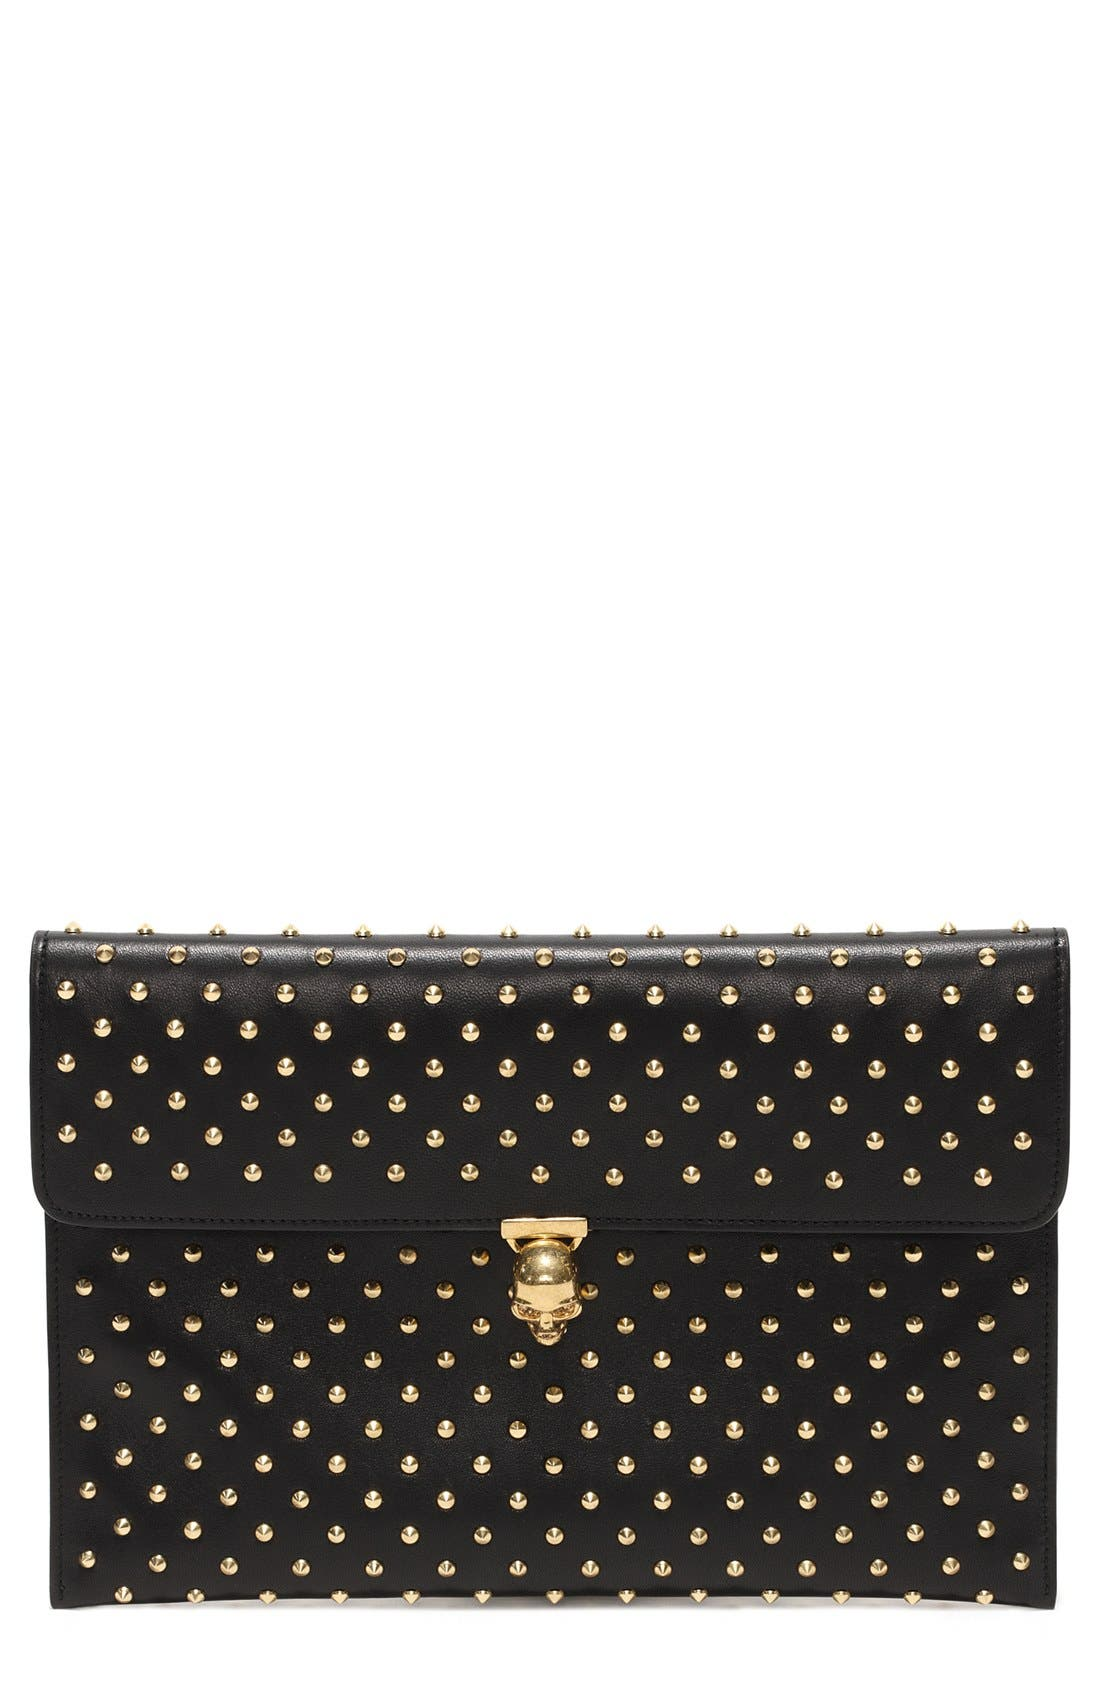 ALEXANDER MCQUEEN 'Skull' Envelope Clutch, Main, color, 001